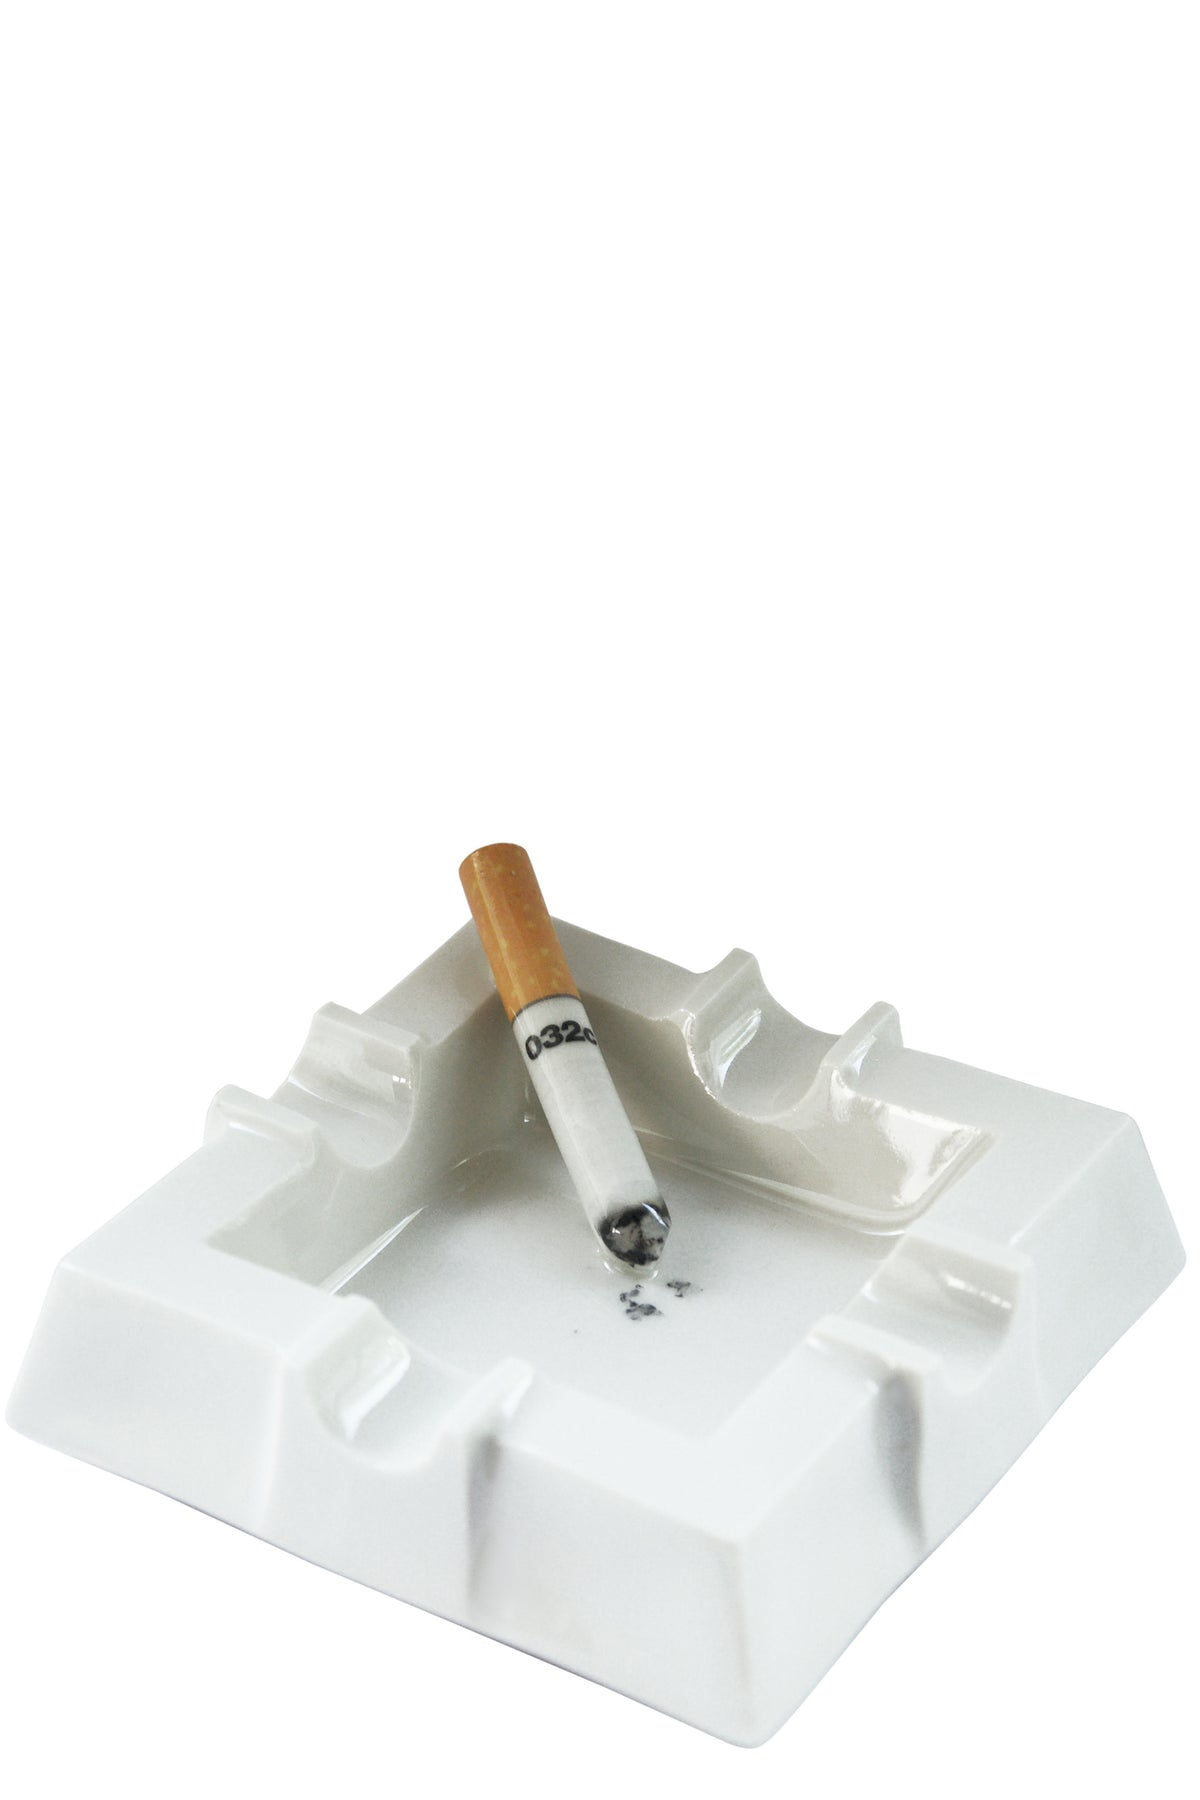 032c Smoker's Collection Ashtray - 032c